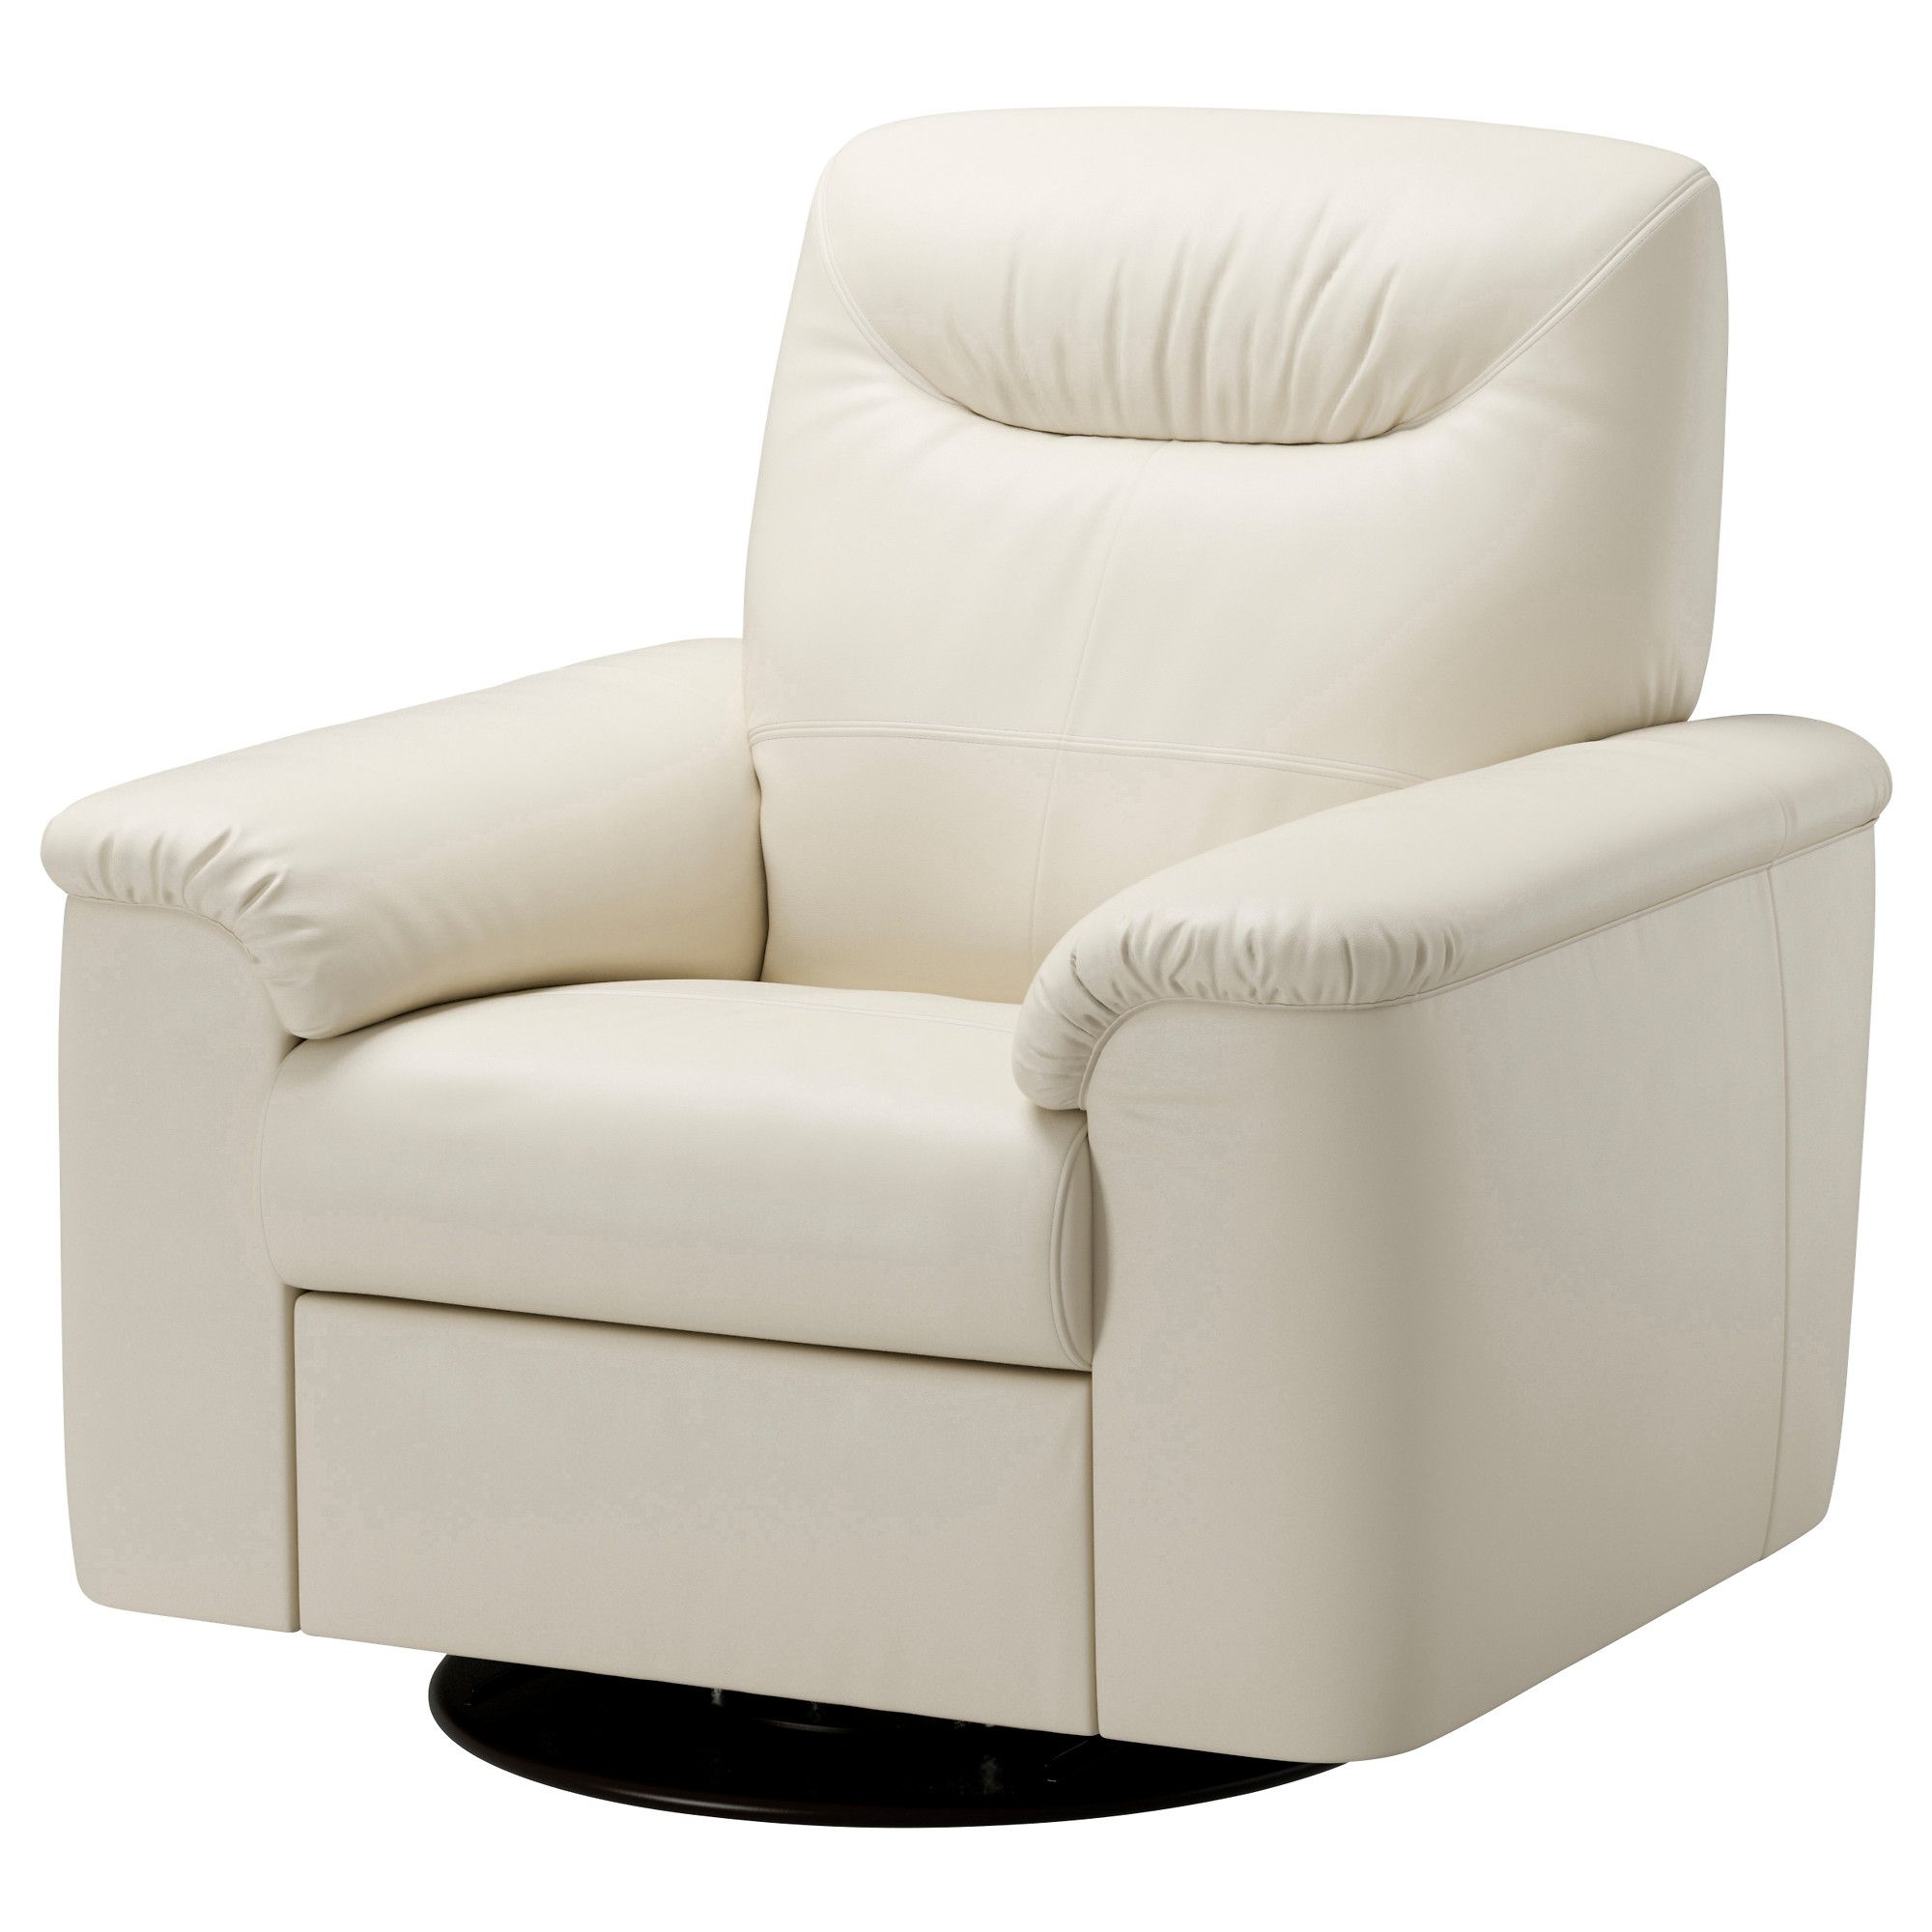 TIMSFORS Swivel Recliner IKEA Contact Areas With Soft, Dyed Through Mm  Thick Grain Leather That Is Supple And Smooth To The Touch.